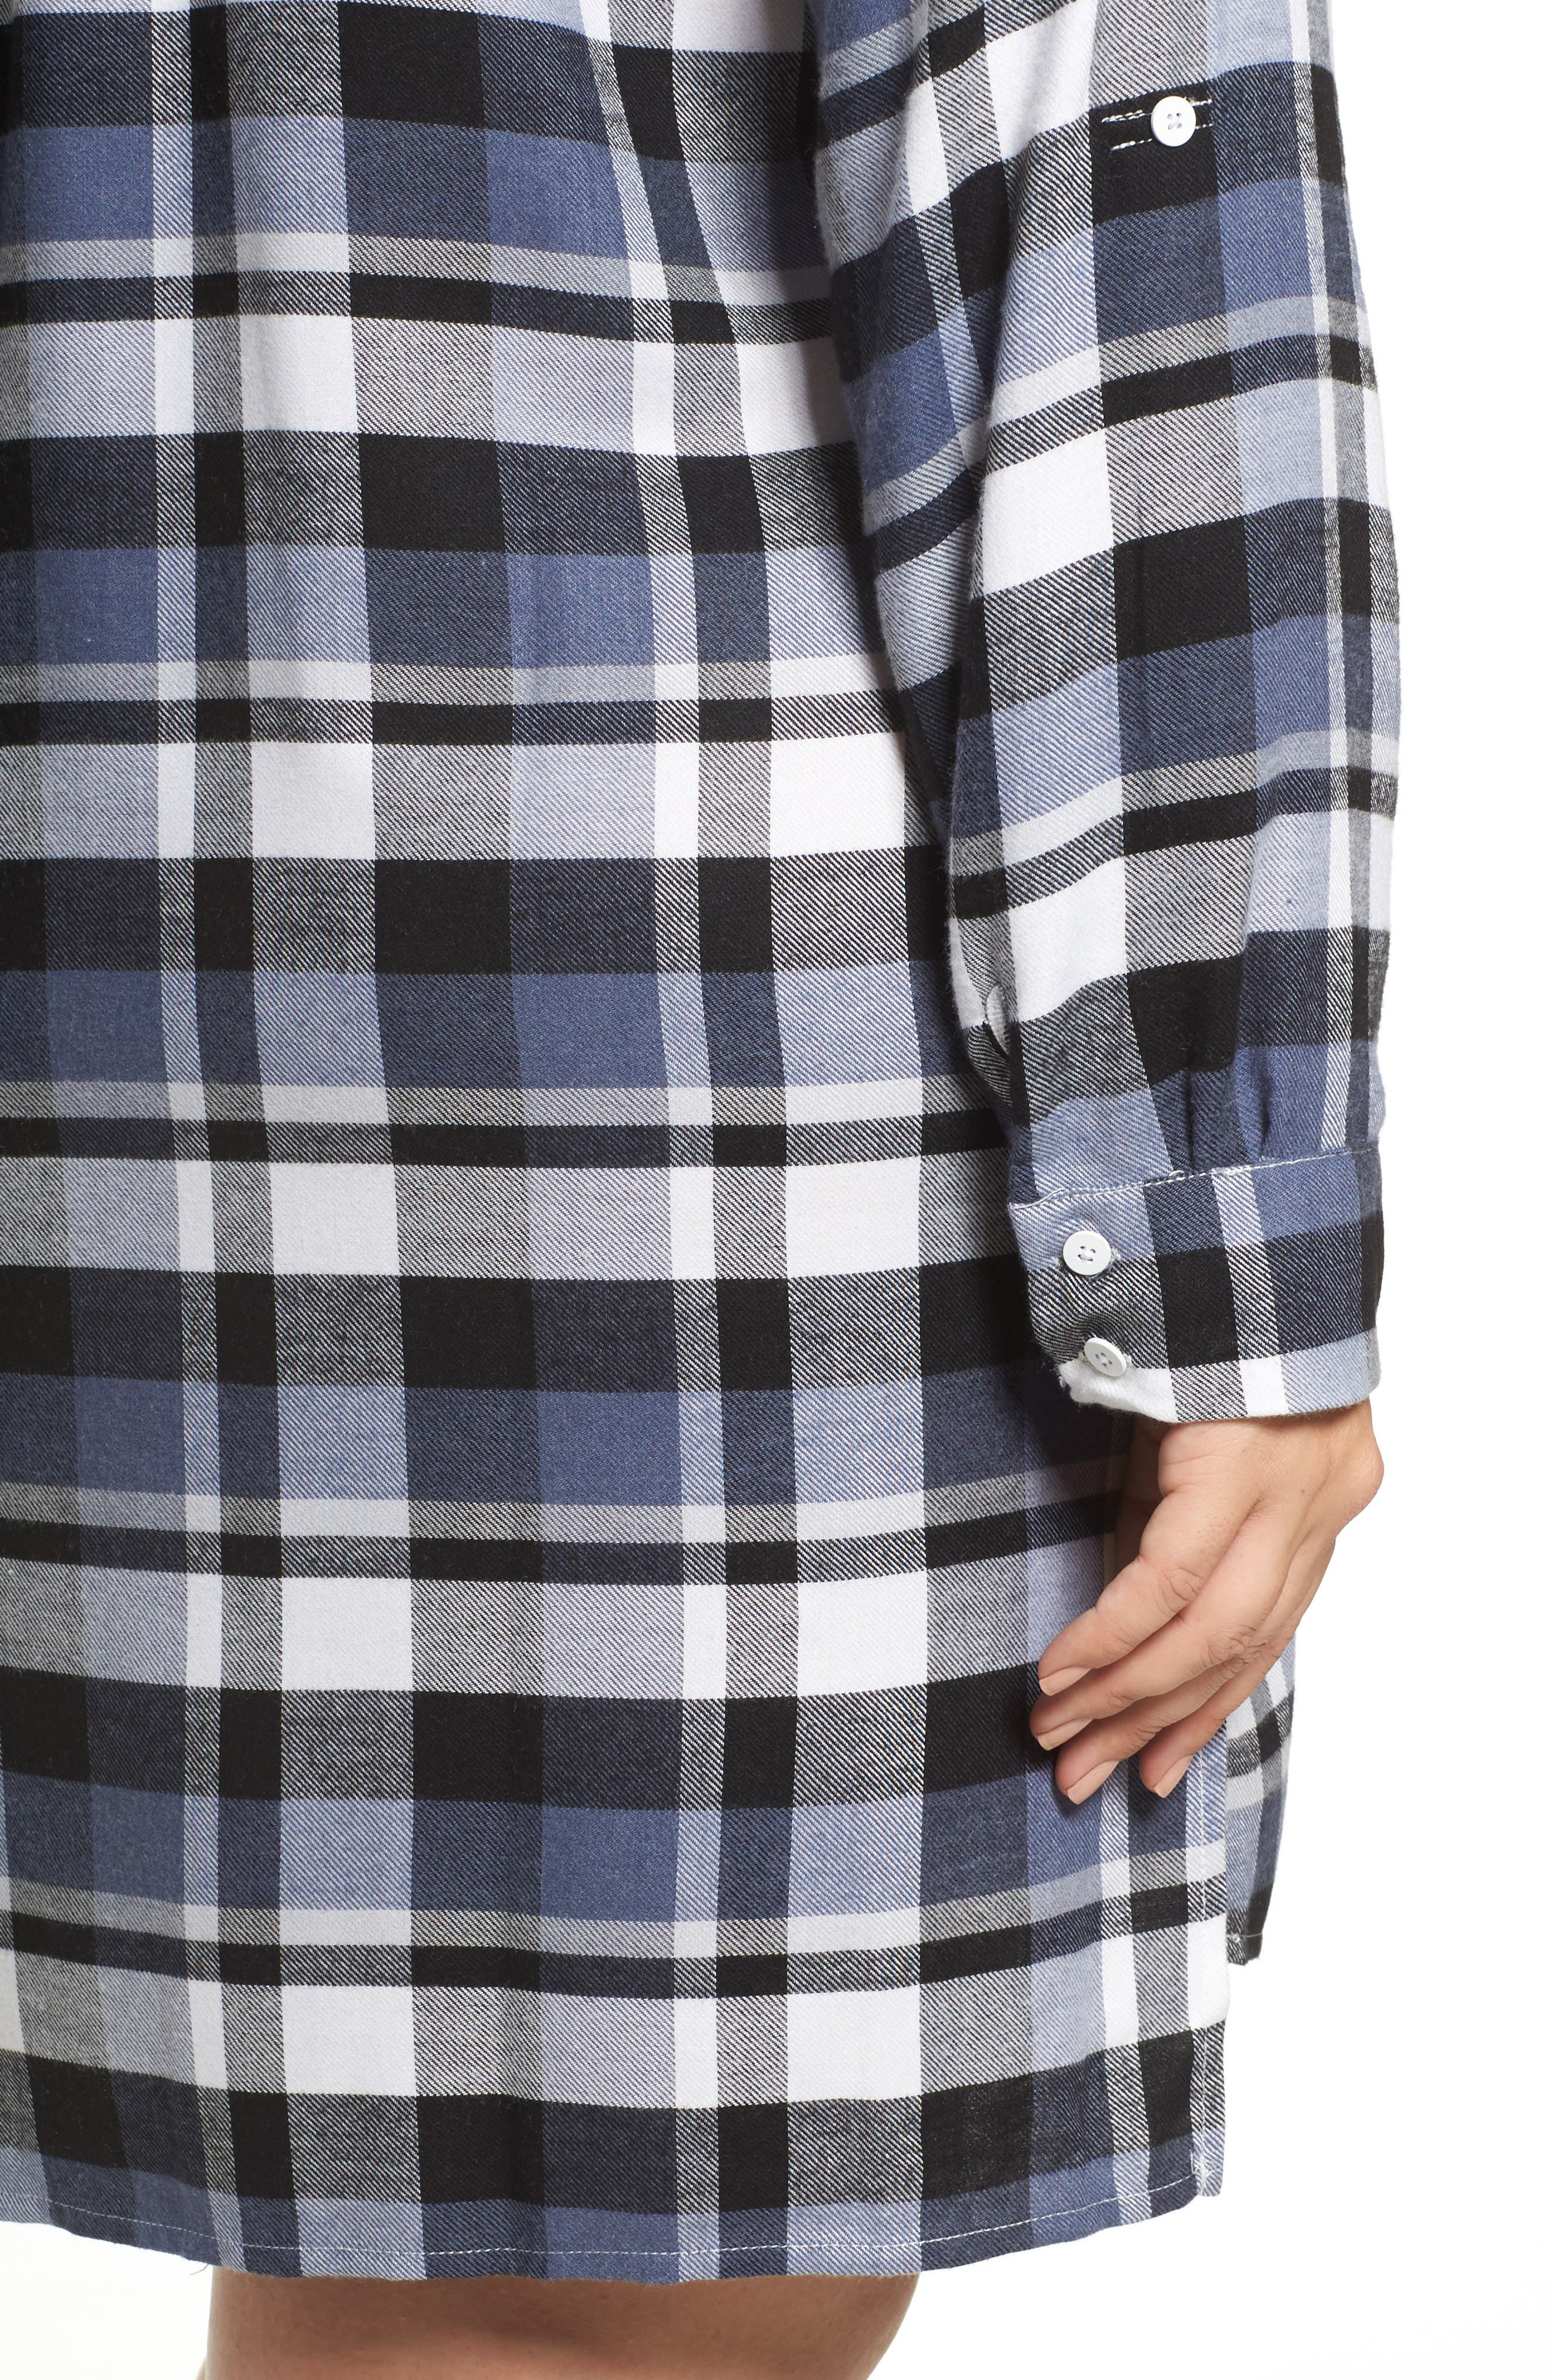 Plaid Sleep Shirt,                             Alternate thumbnail 4, color,                             400